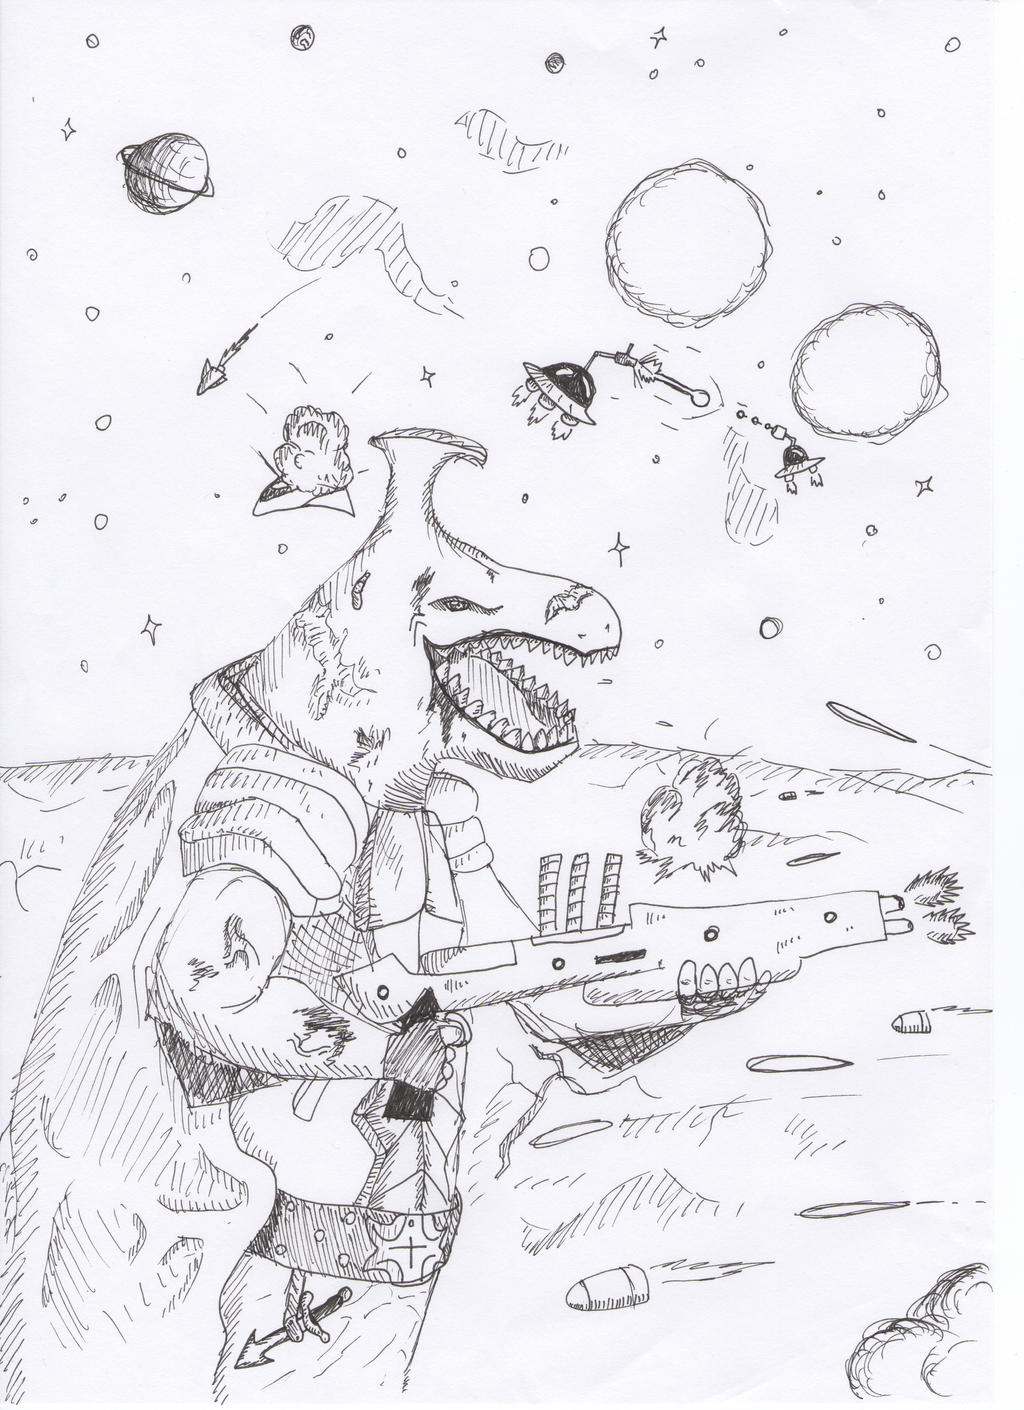 Dinosaur,space yeah by Spyhamschter